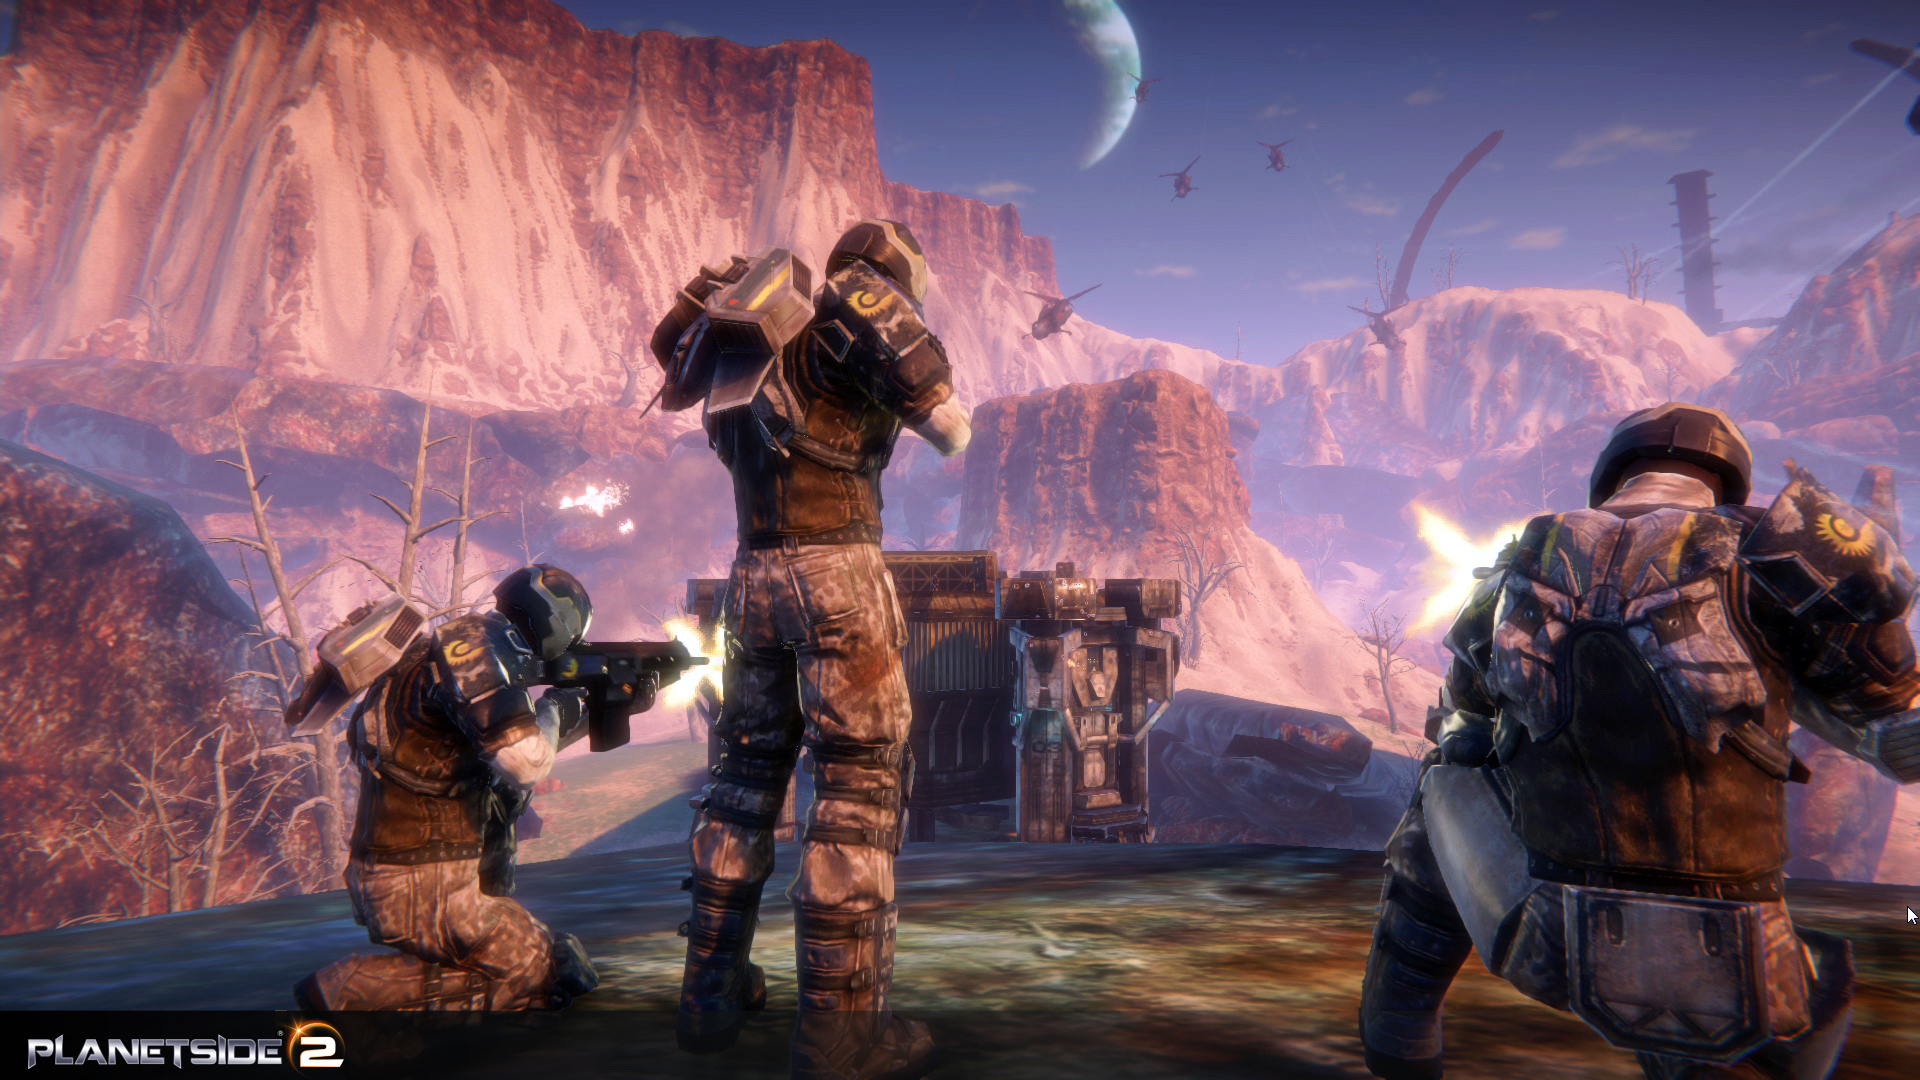 Click image for larger version. Name:	Planetside 2 (3).jpg Views:	267 Size:	1.51 MB ID:	9175